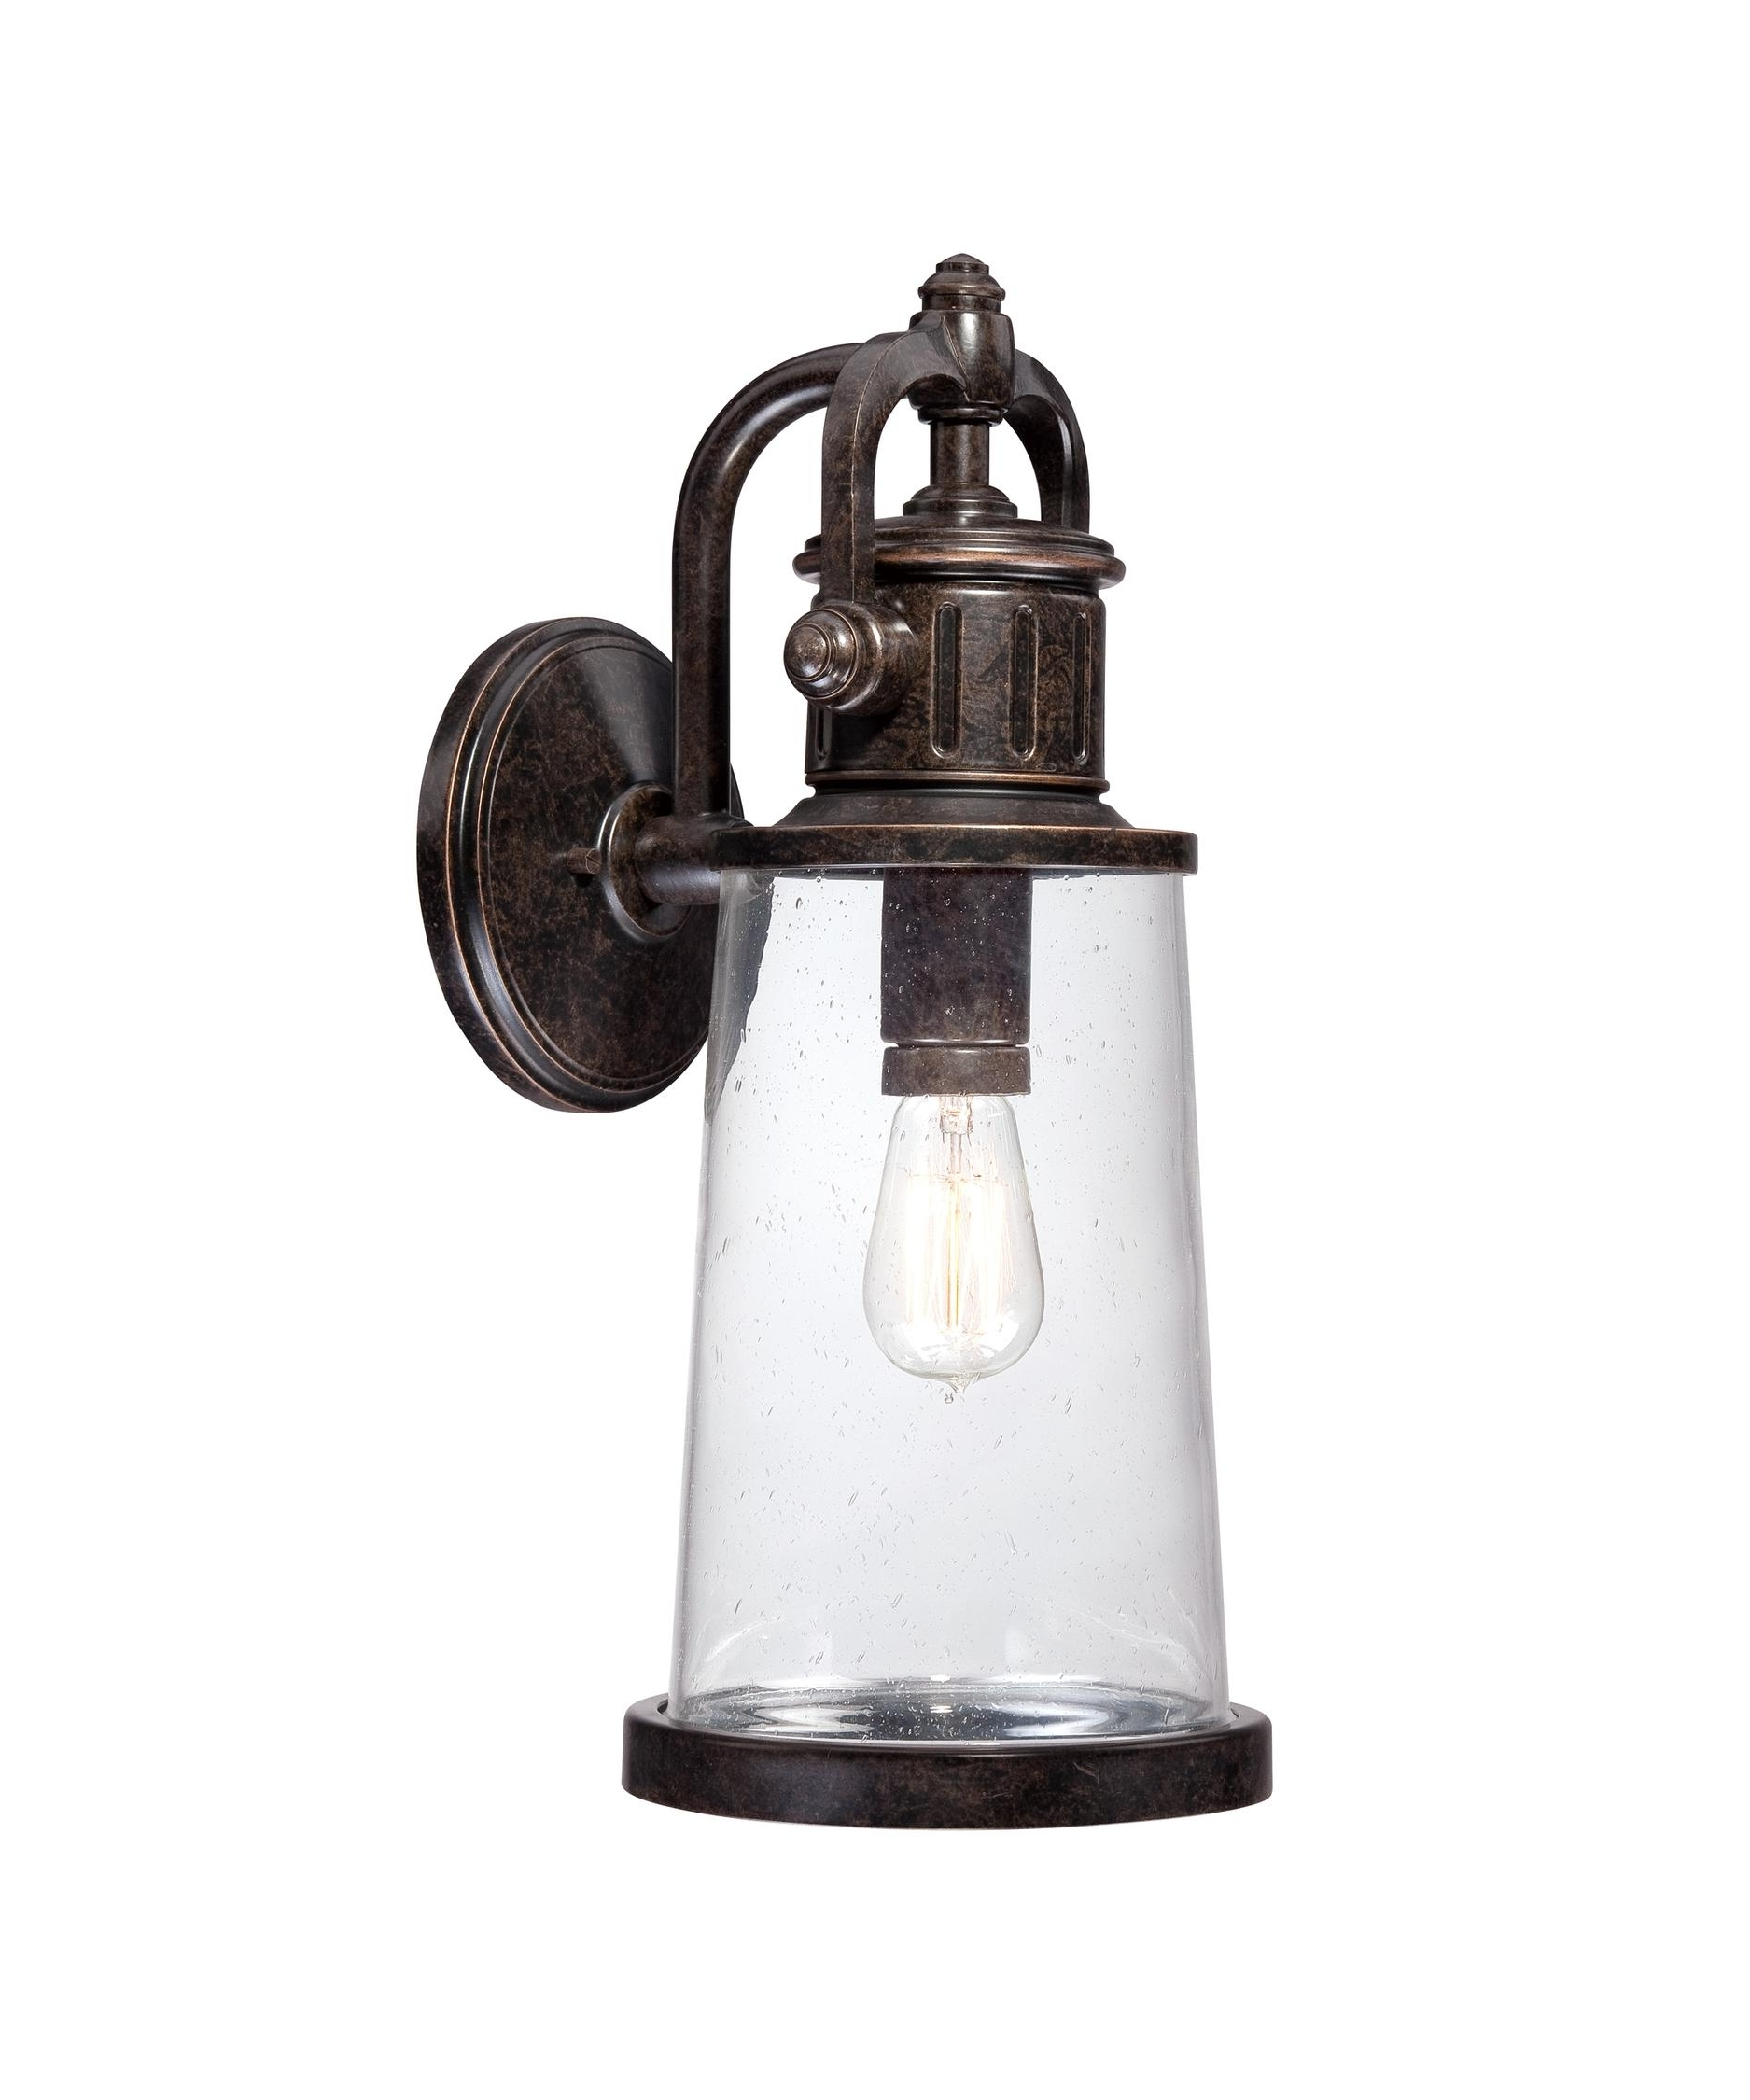 Quoizel Outdoor Lanterns Throughout Newest Quoizel Sdn8408 Steadman 8 Inch Wide 1 Light Outdoor Wall Light (View 9 of 20)